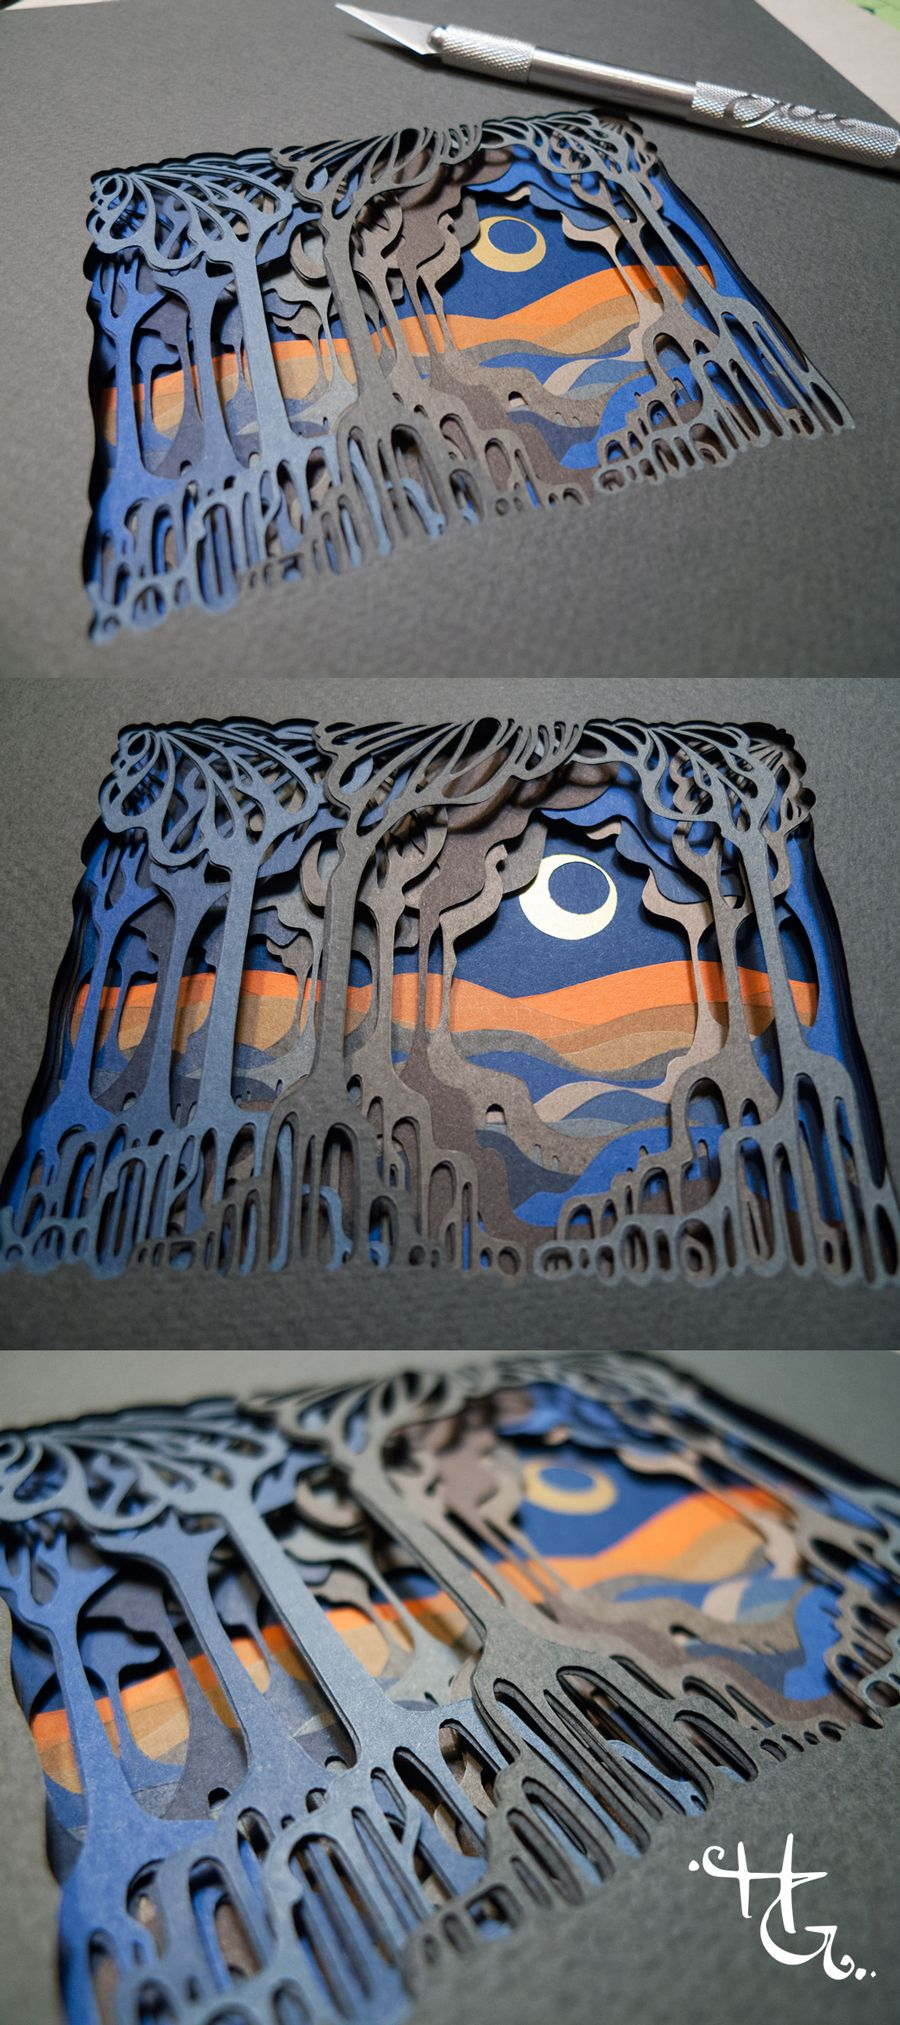 She Parts The Trees, 31 layers of hand cut paper, 3x4 inches, 2017, by Hazel Glass: My original papercut art is created with archival artist papers and an xacto blade. Whether the designs are symmetrical or organic, I specialize in meticulous work that requires attention to detail and fine craftsmanship. #layeredartbyhazelglass #handcutpaper #cutbyhand #papercutting #papercut #layeredart #basrelief #handcutpaperart #paperart #artinspiredbynature #paperartist #originaldesign #originalart #bookspapersandthings